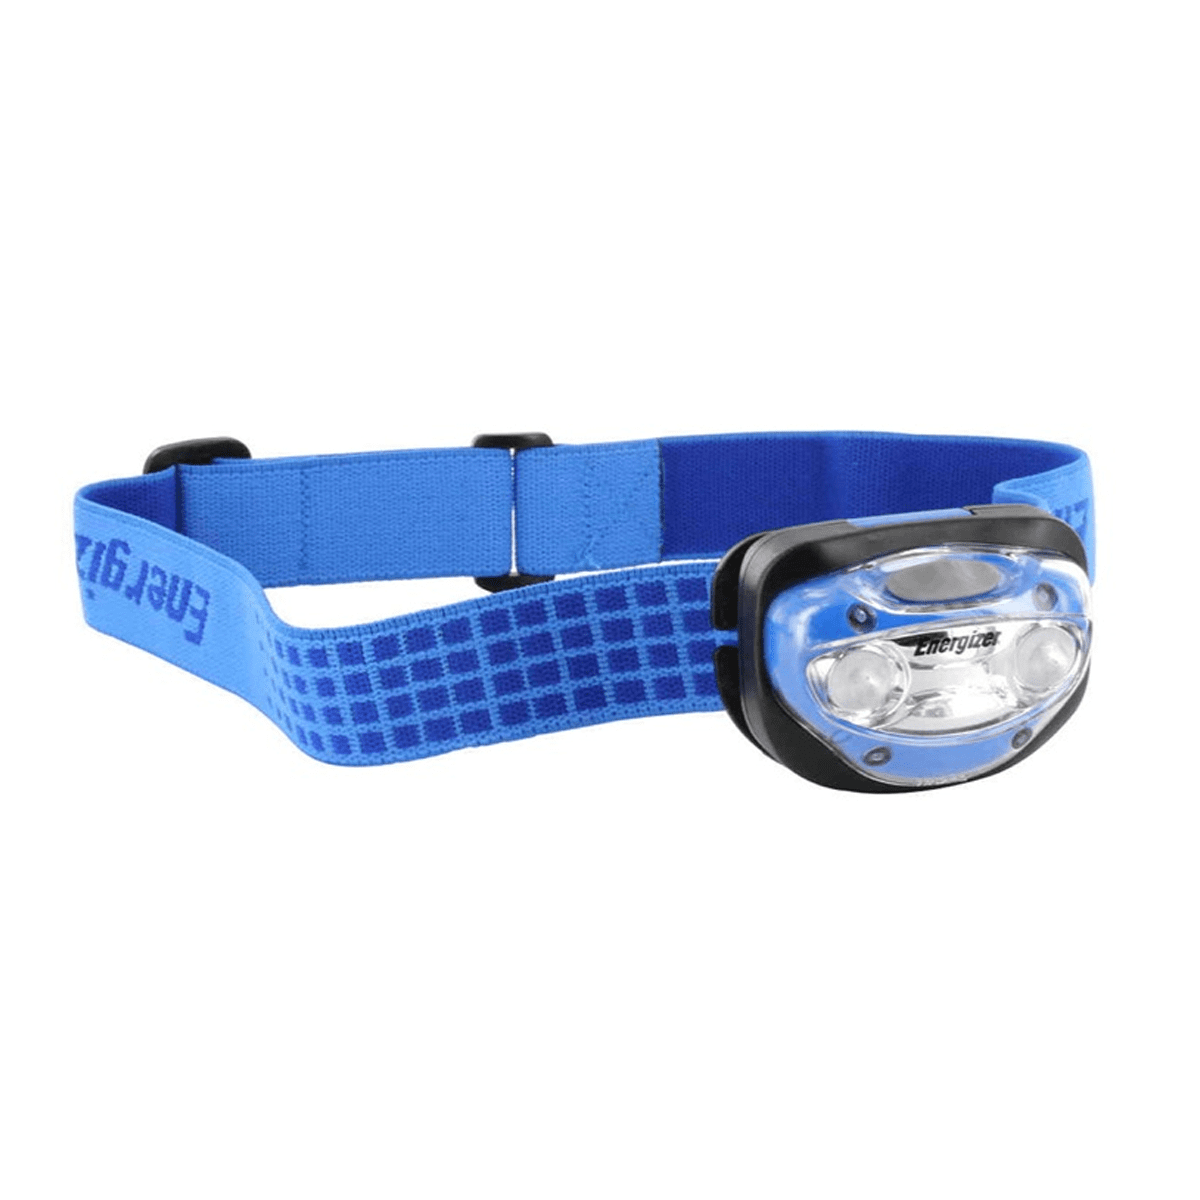 Energizer Vision LED Headlight (100lm)